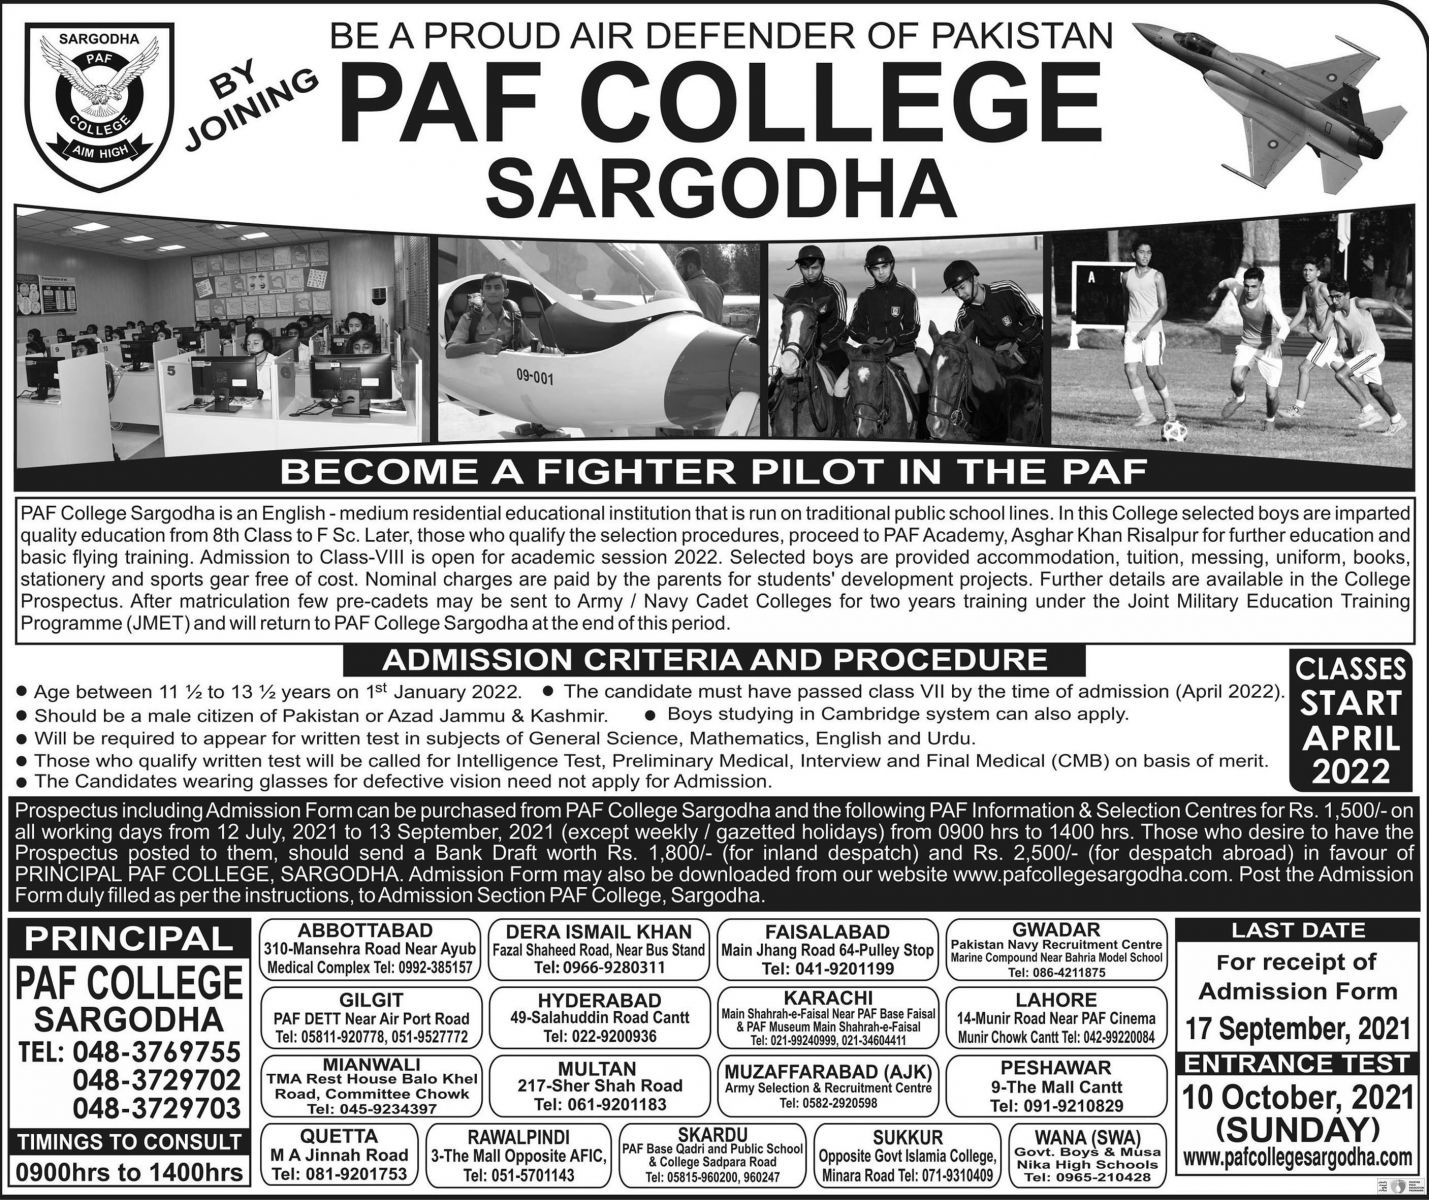 PAF College Sargodha Admission 8th Class 2021-2022